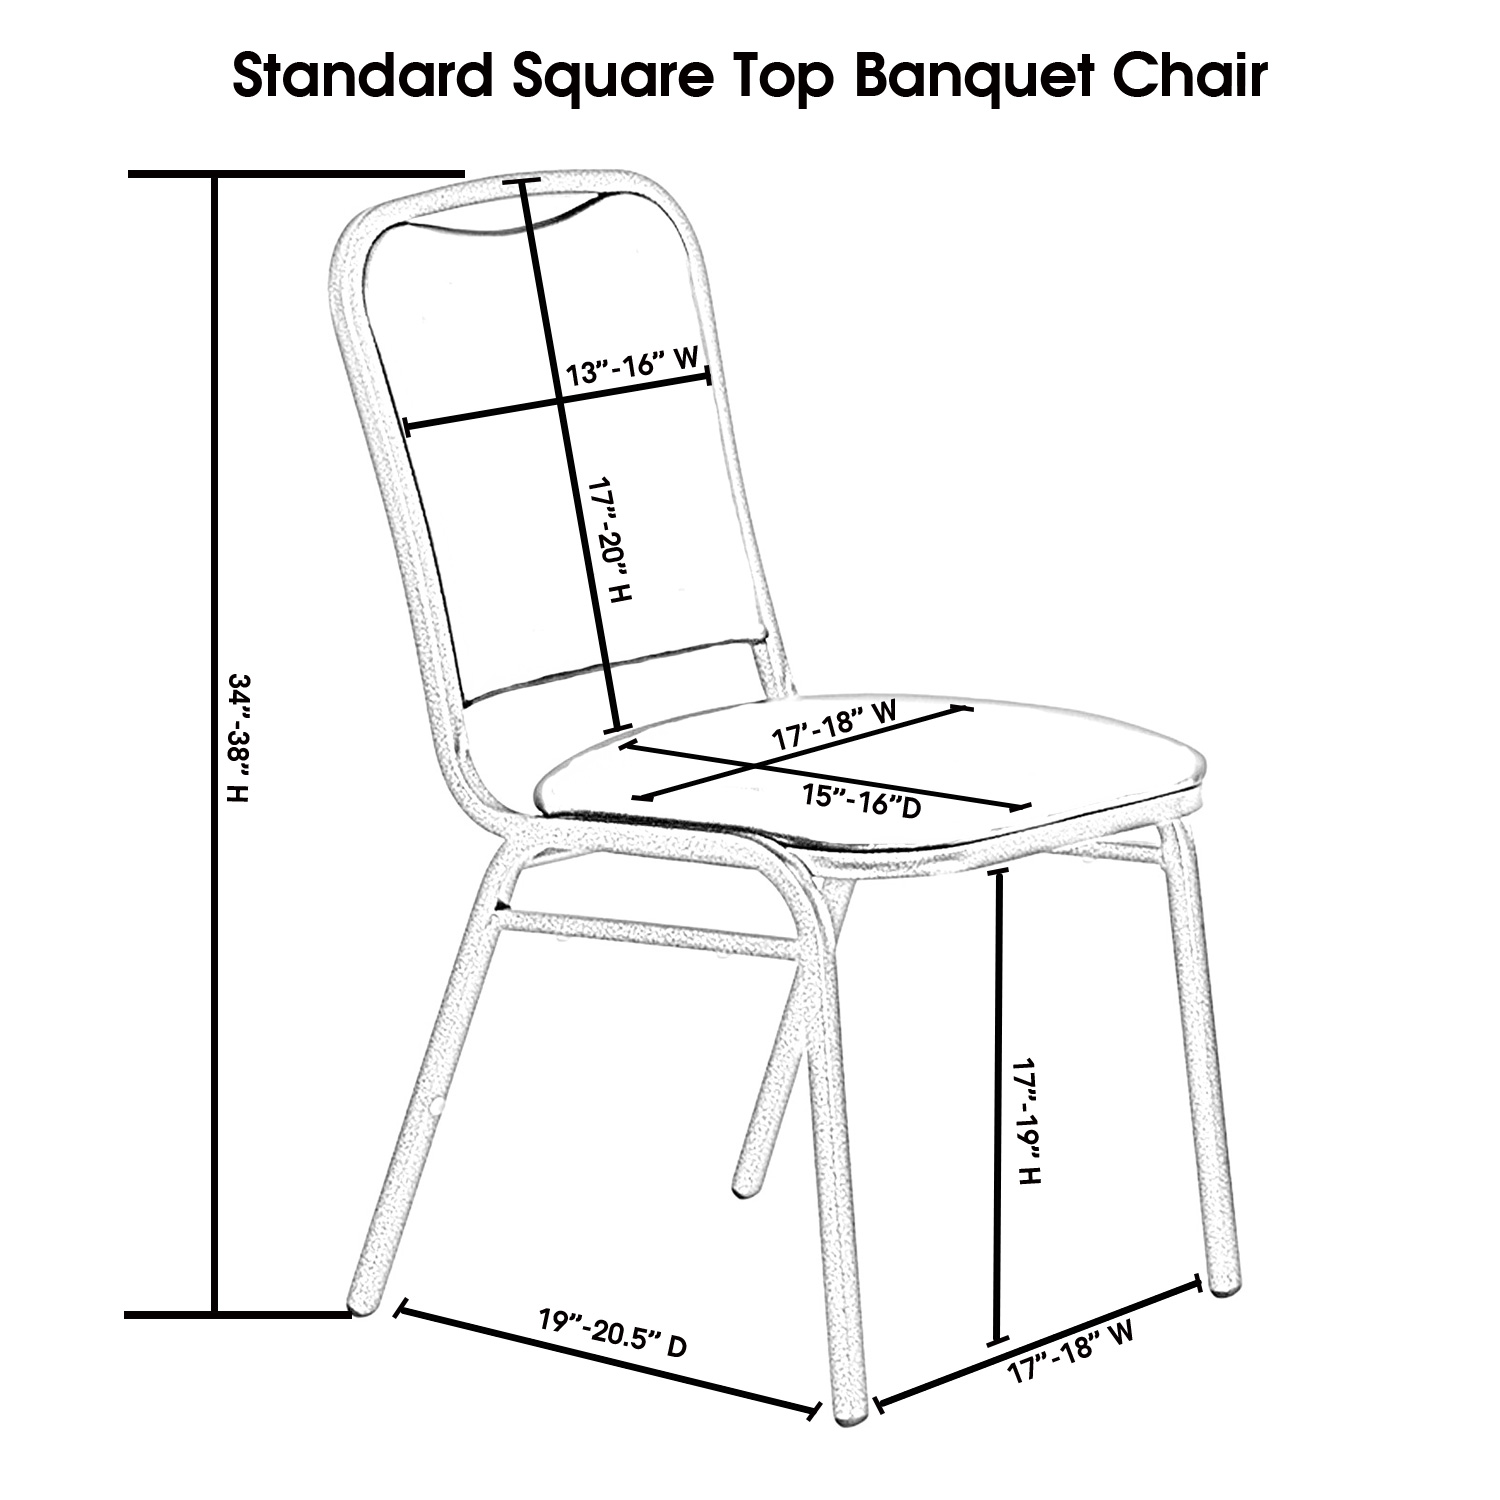 square-top-banquet-chair-covers-dimensions.jpg